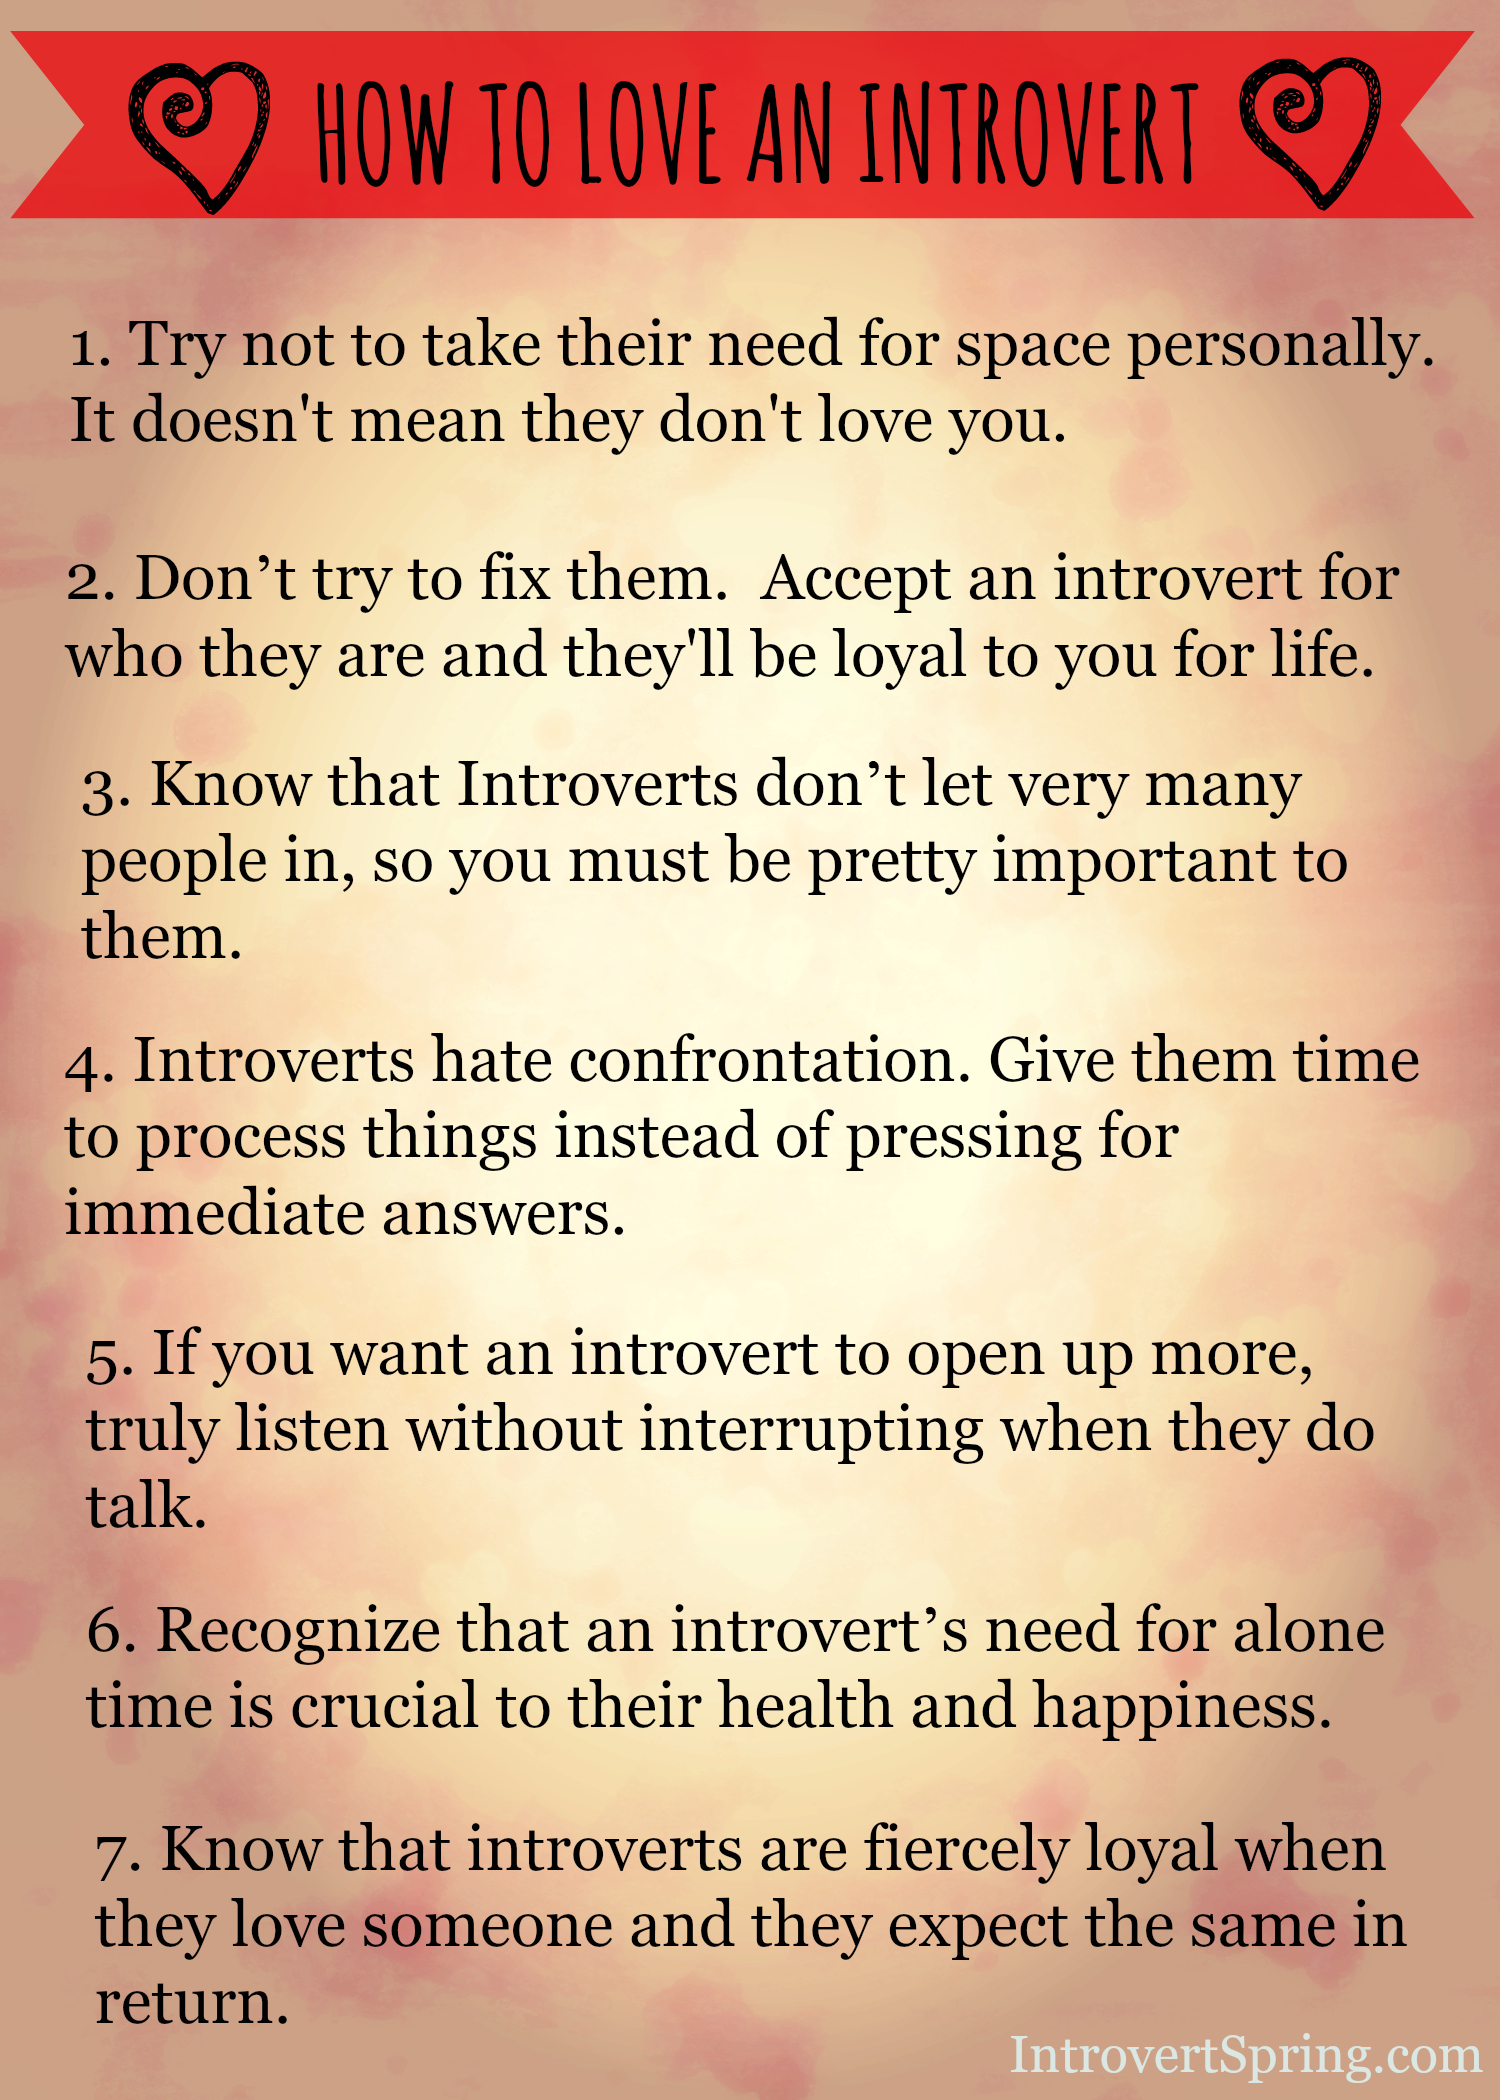 dating tips for introverts people without love images